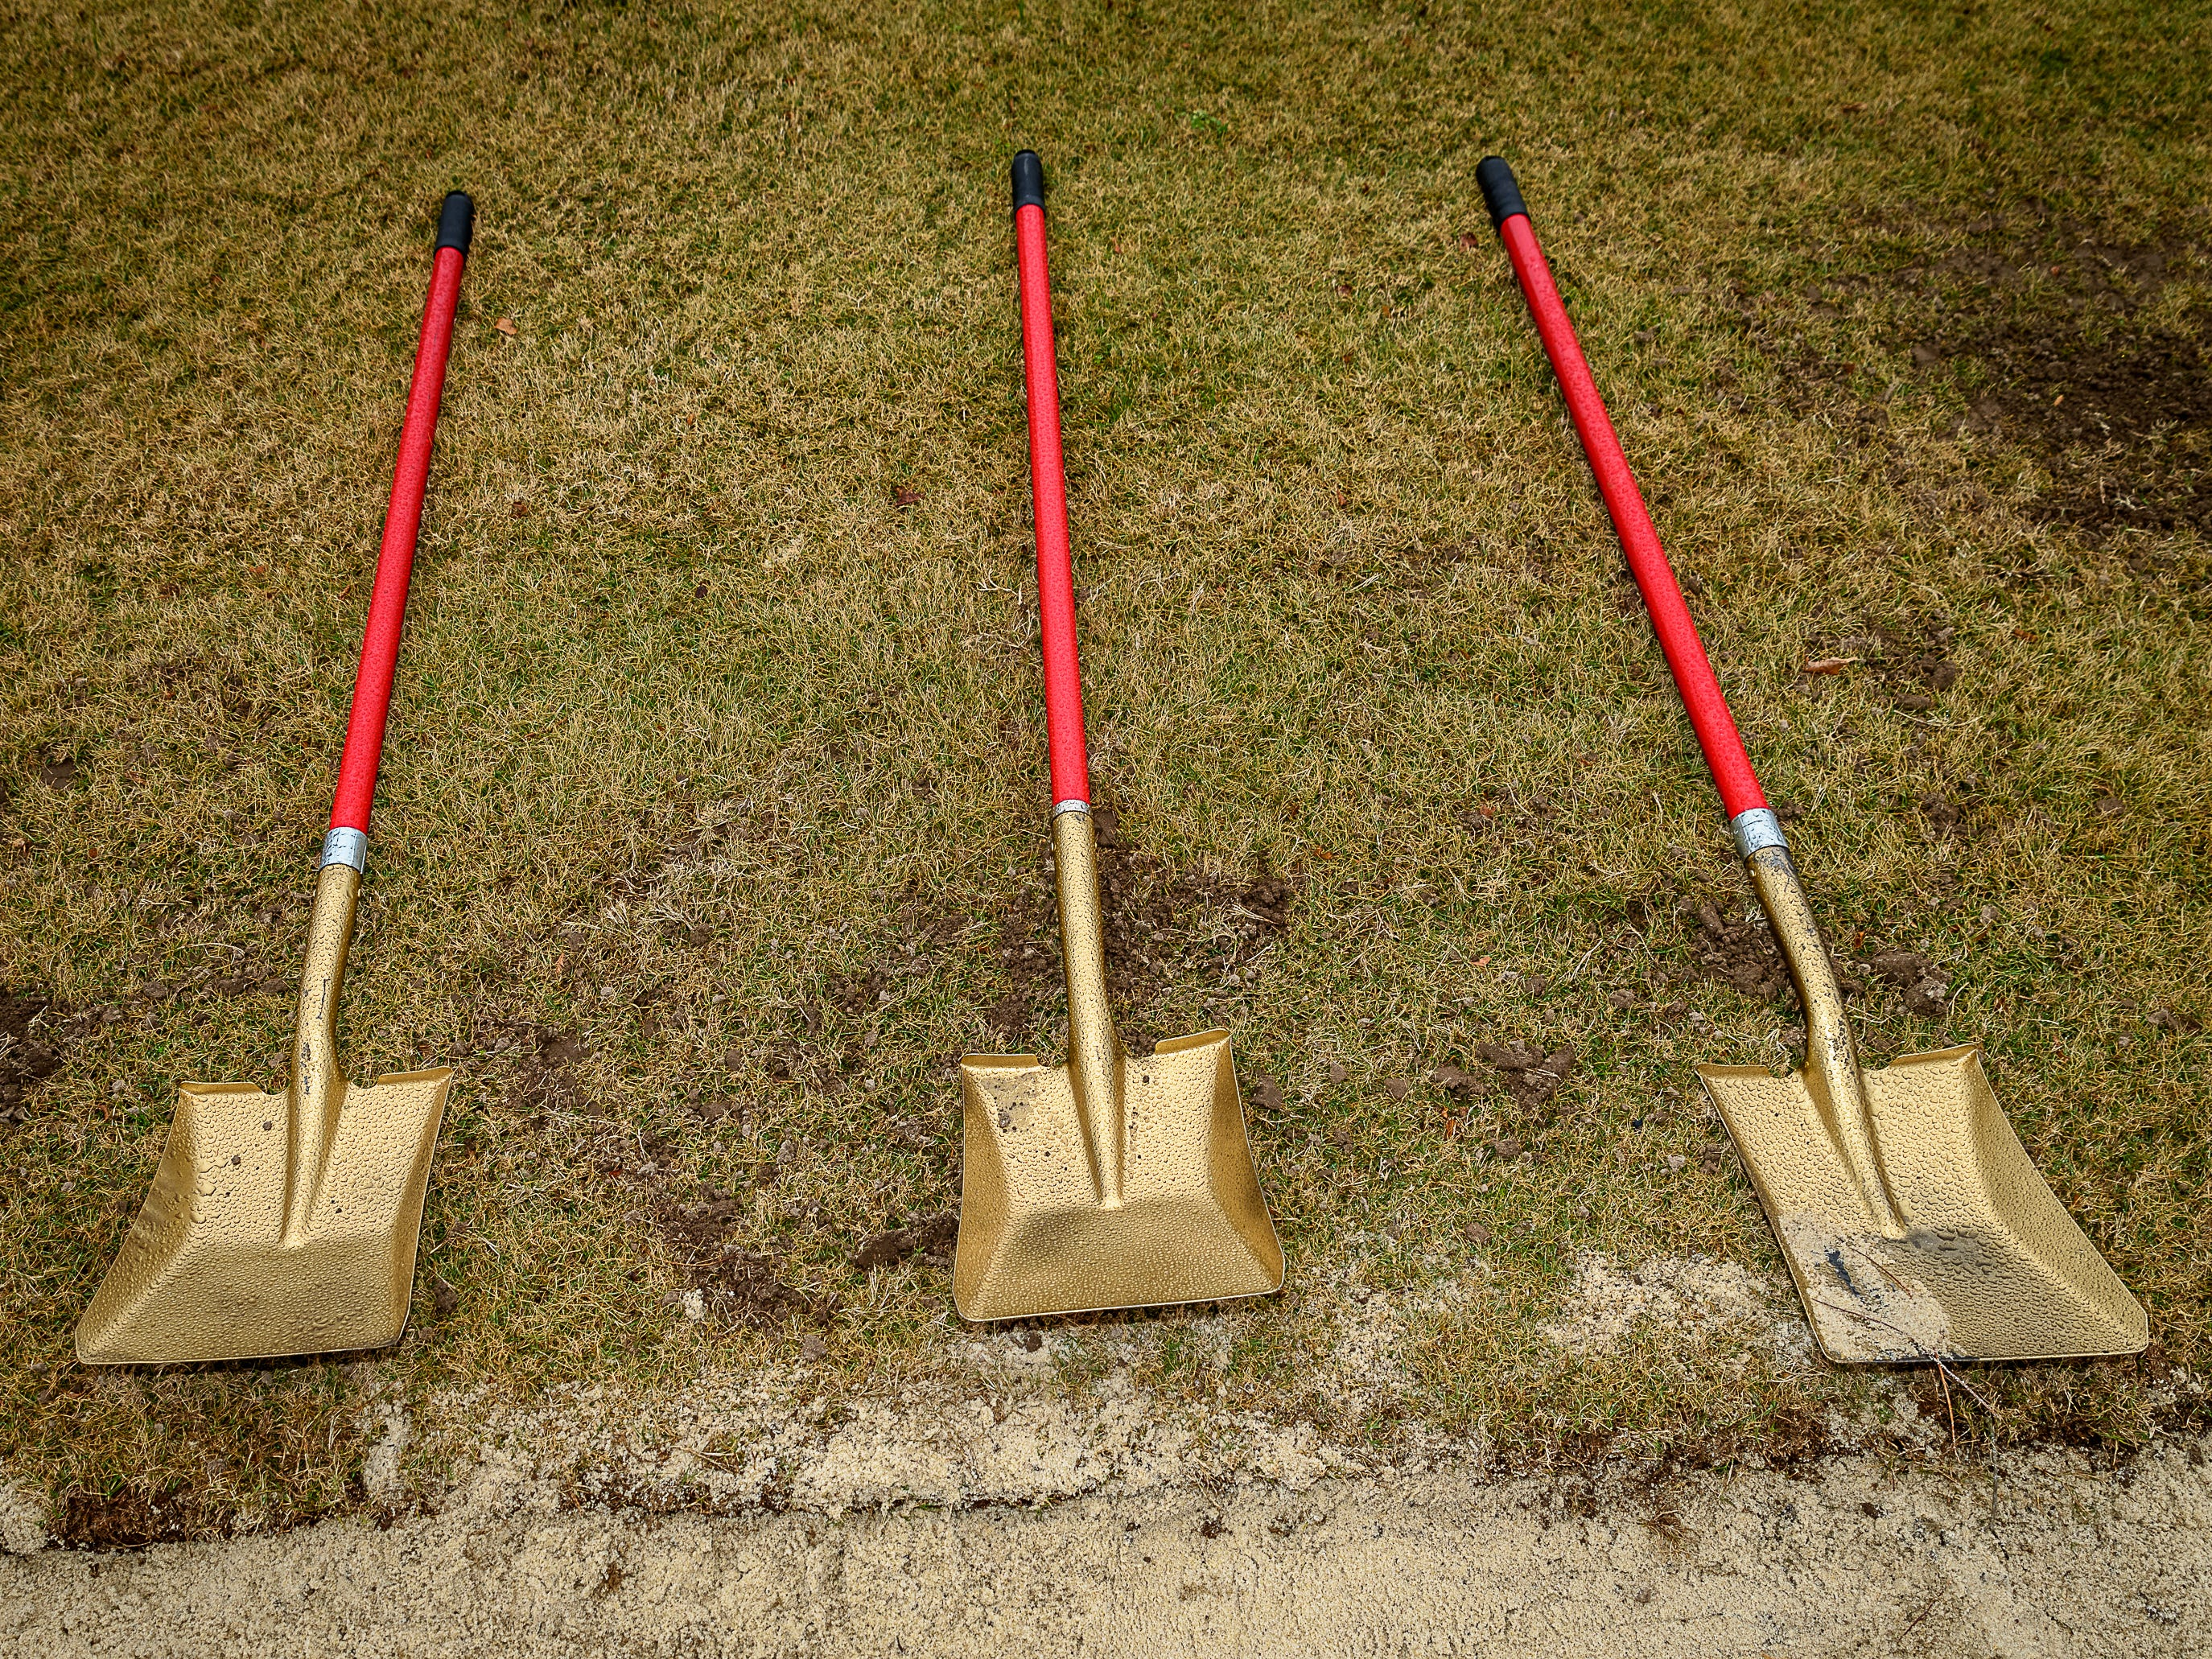 Shovels are laid out in preparation of the groundbreaking ceremony.